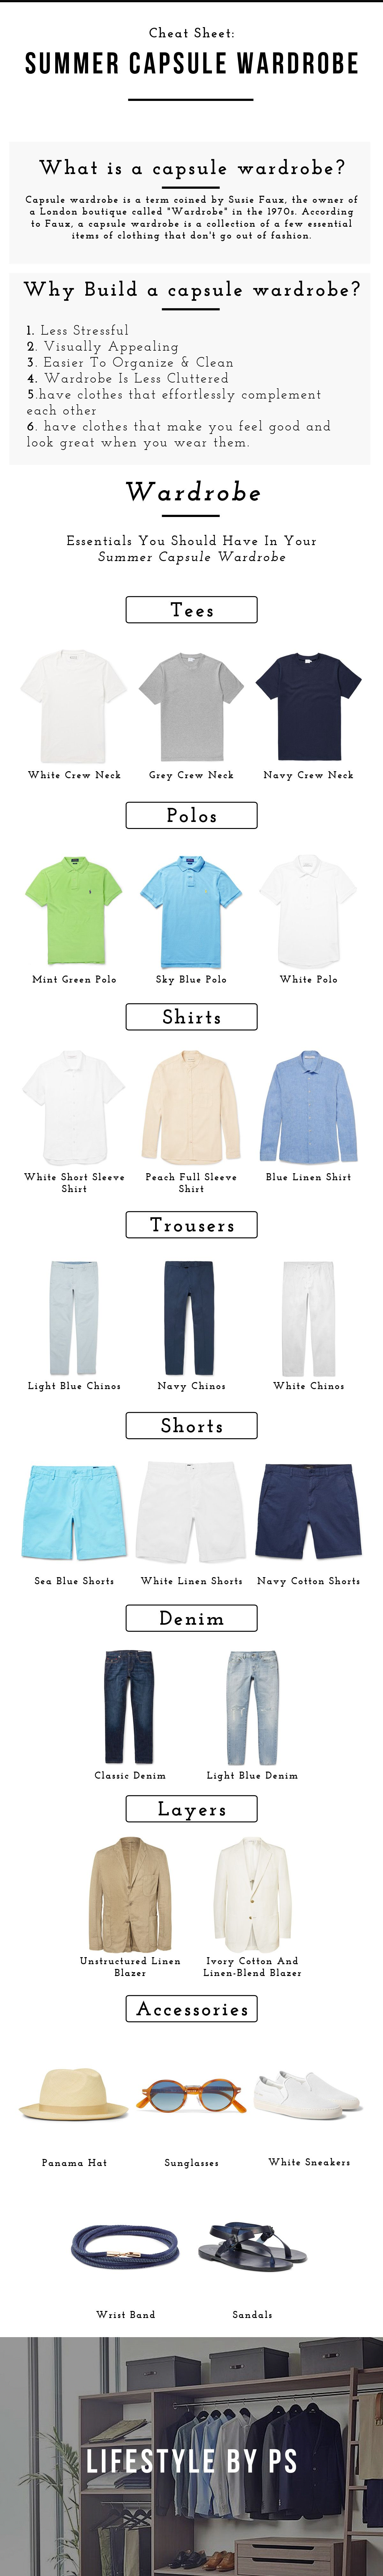 Your Summer Capsule Wardrobe Sorted